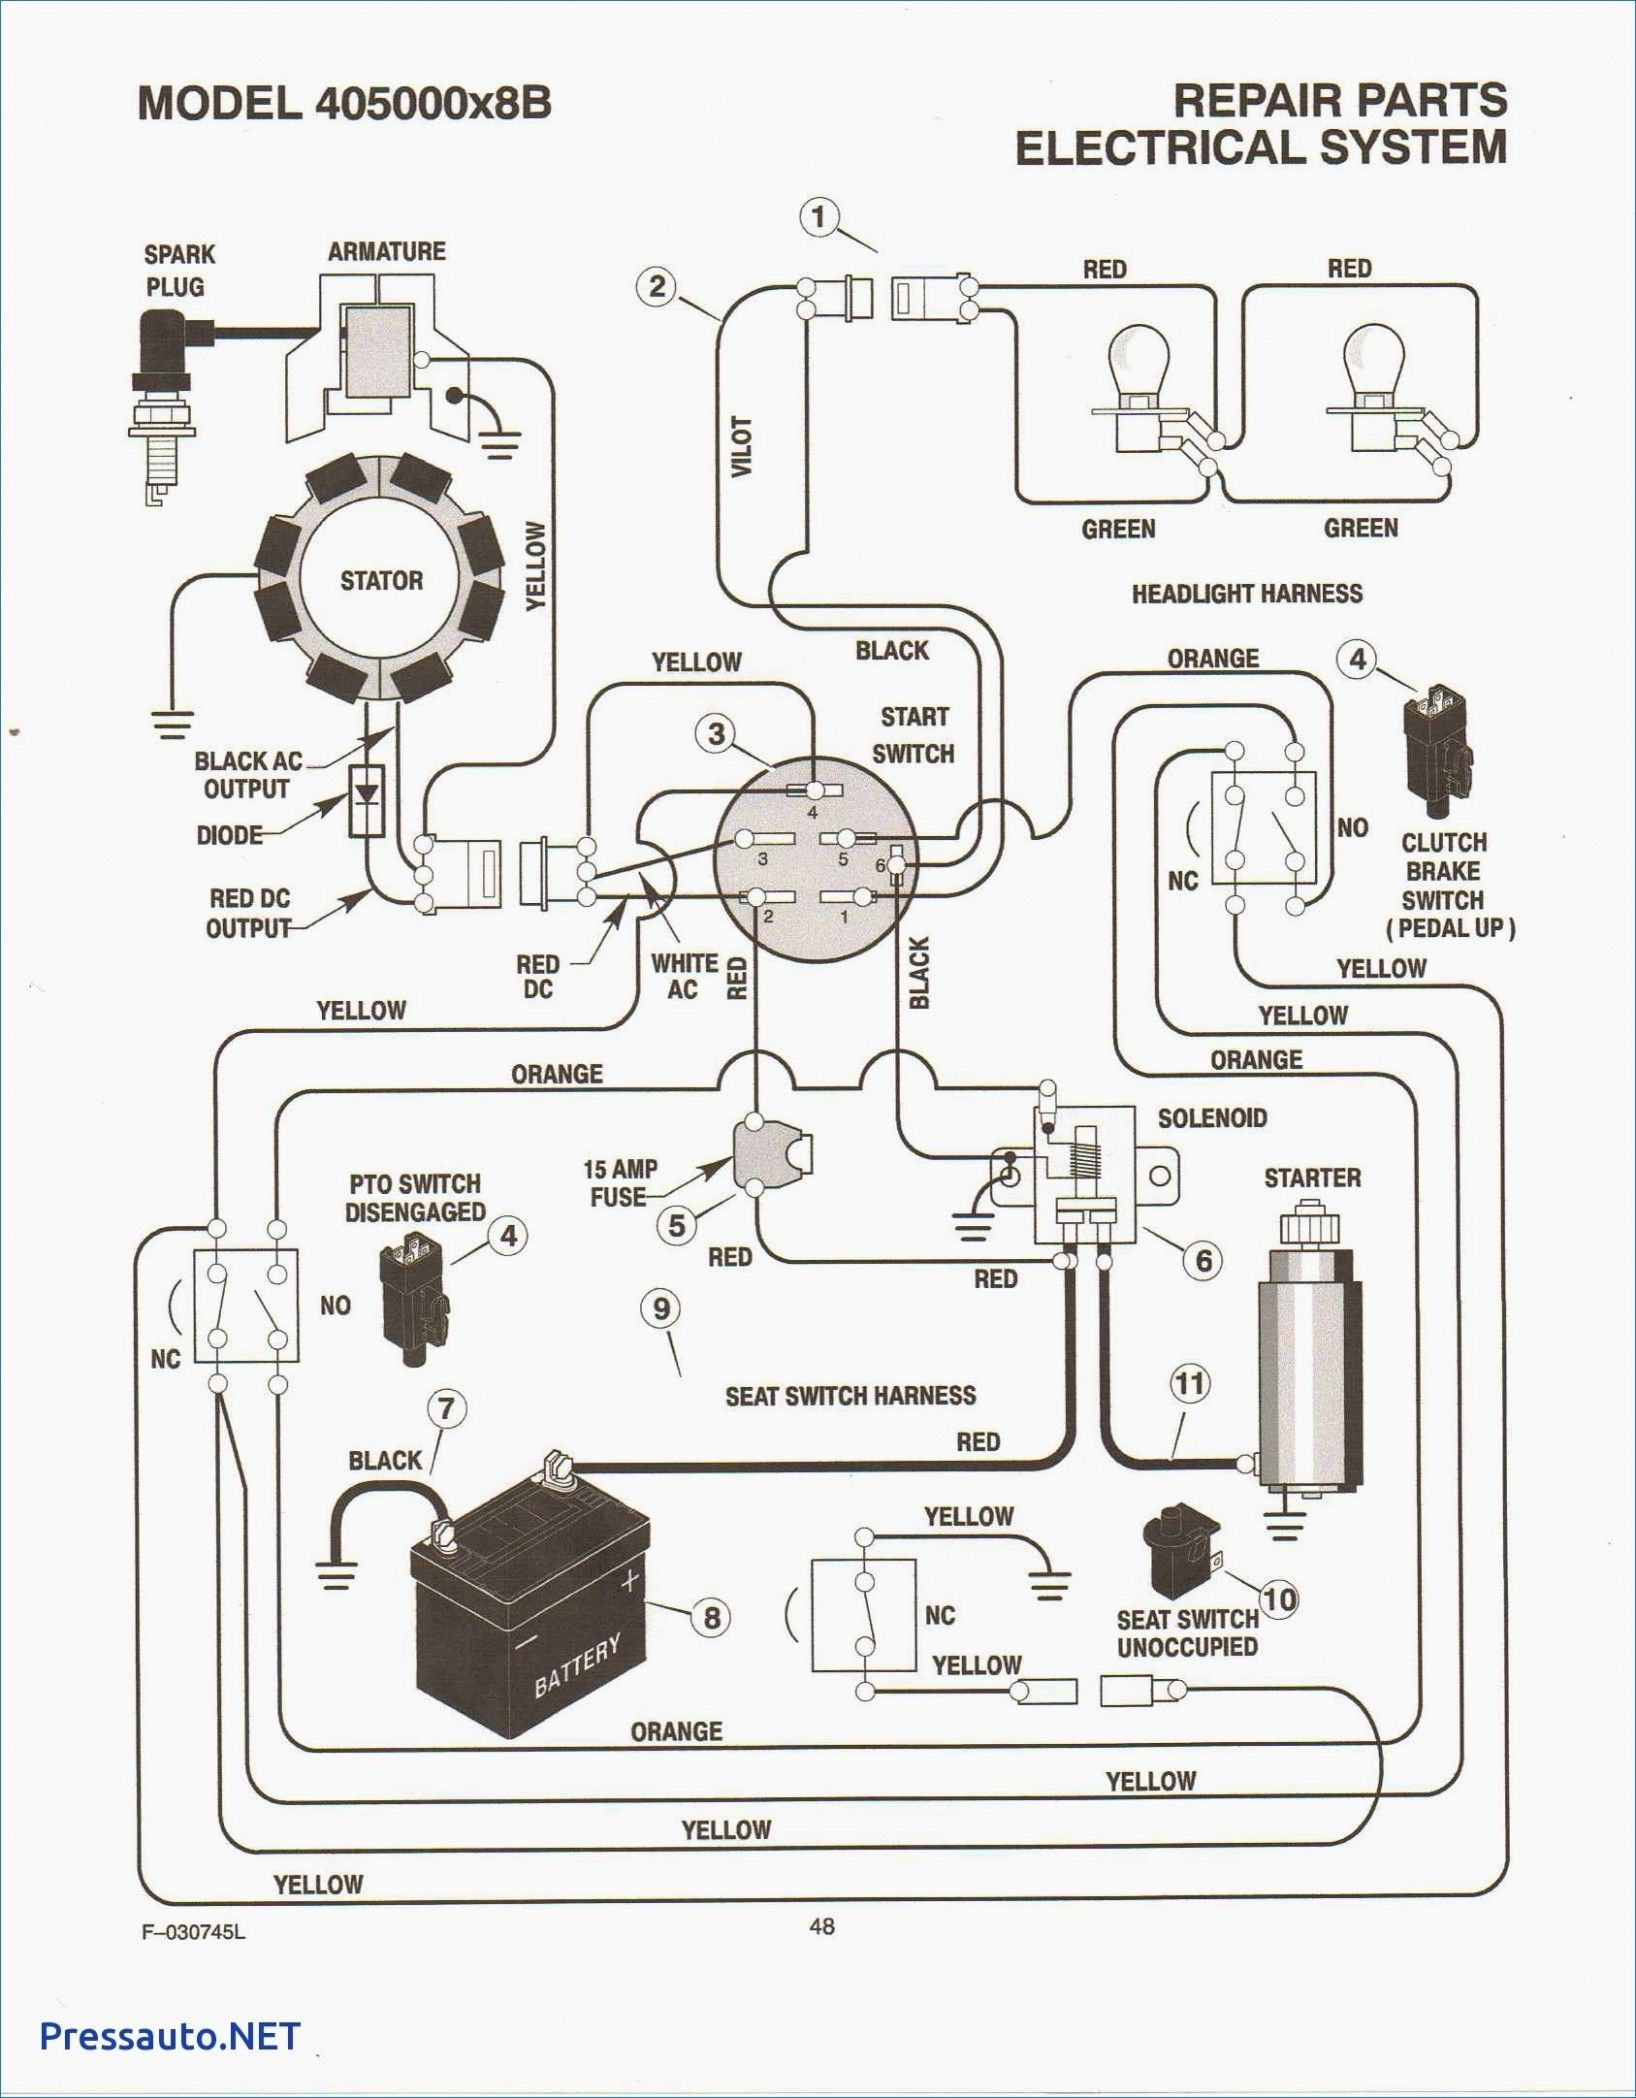 Simple Small Engine Wiring Diagram Diagram Electrical Diagram Kohler Engines